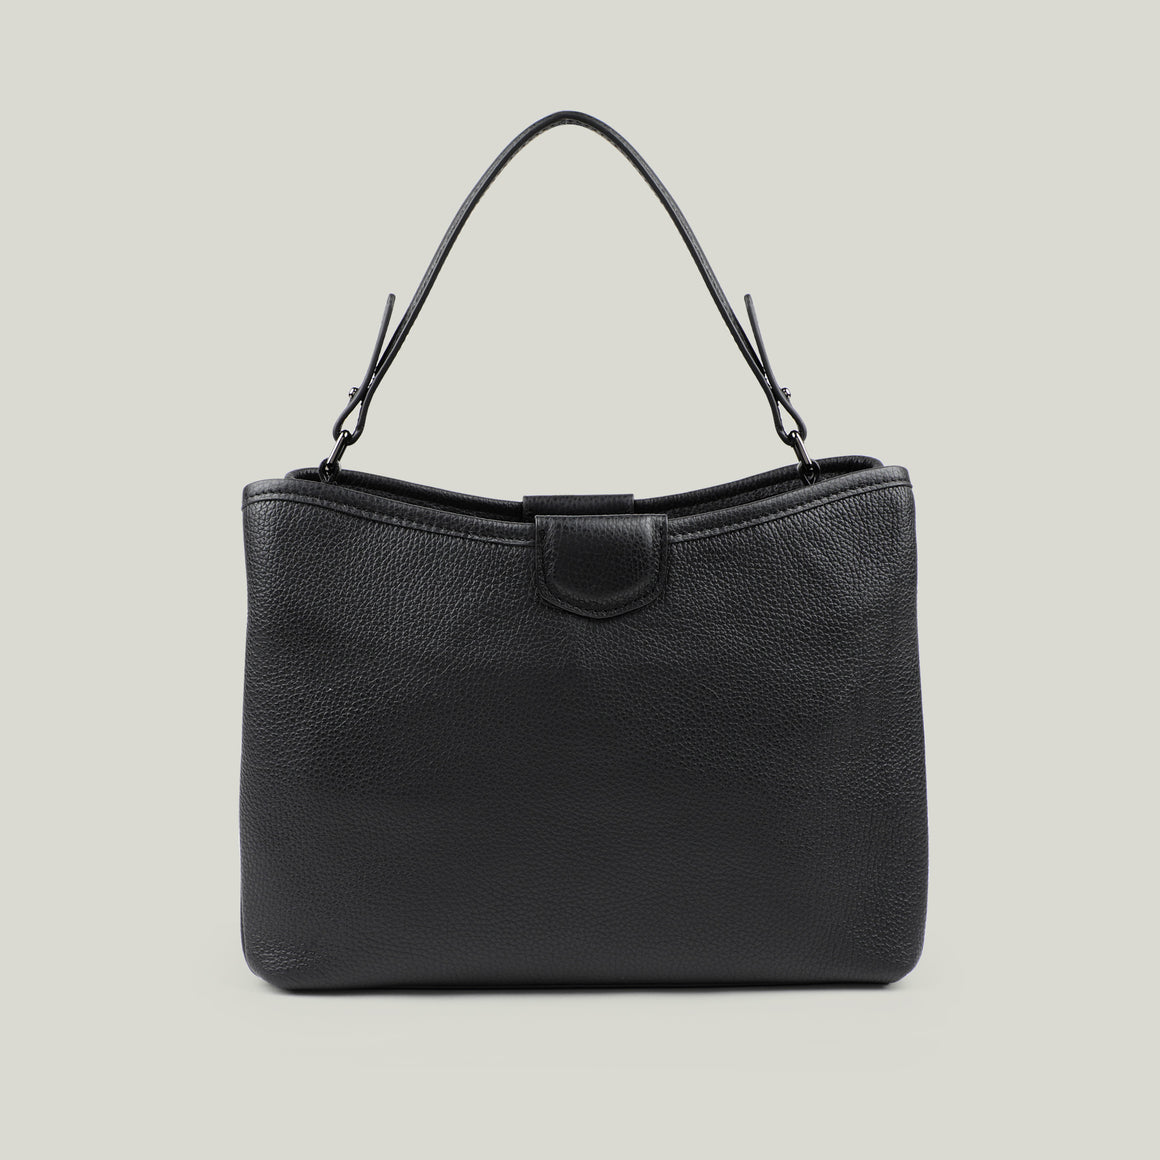 Tote bag Emerald Envy Black - Dminimis